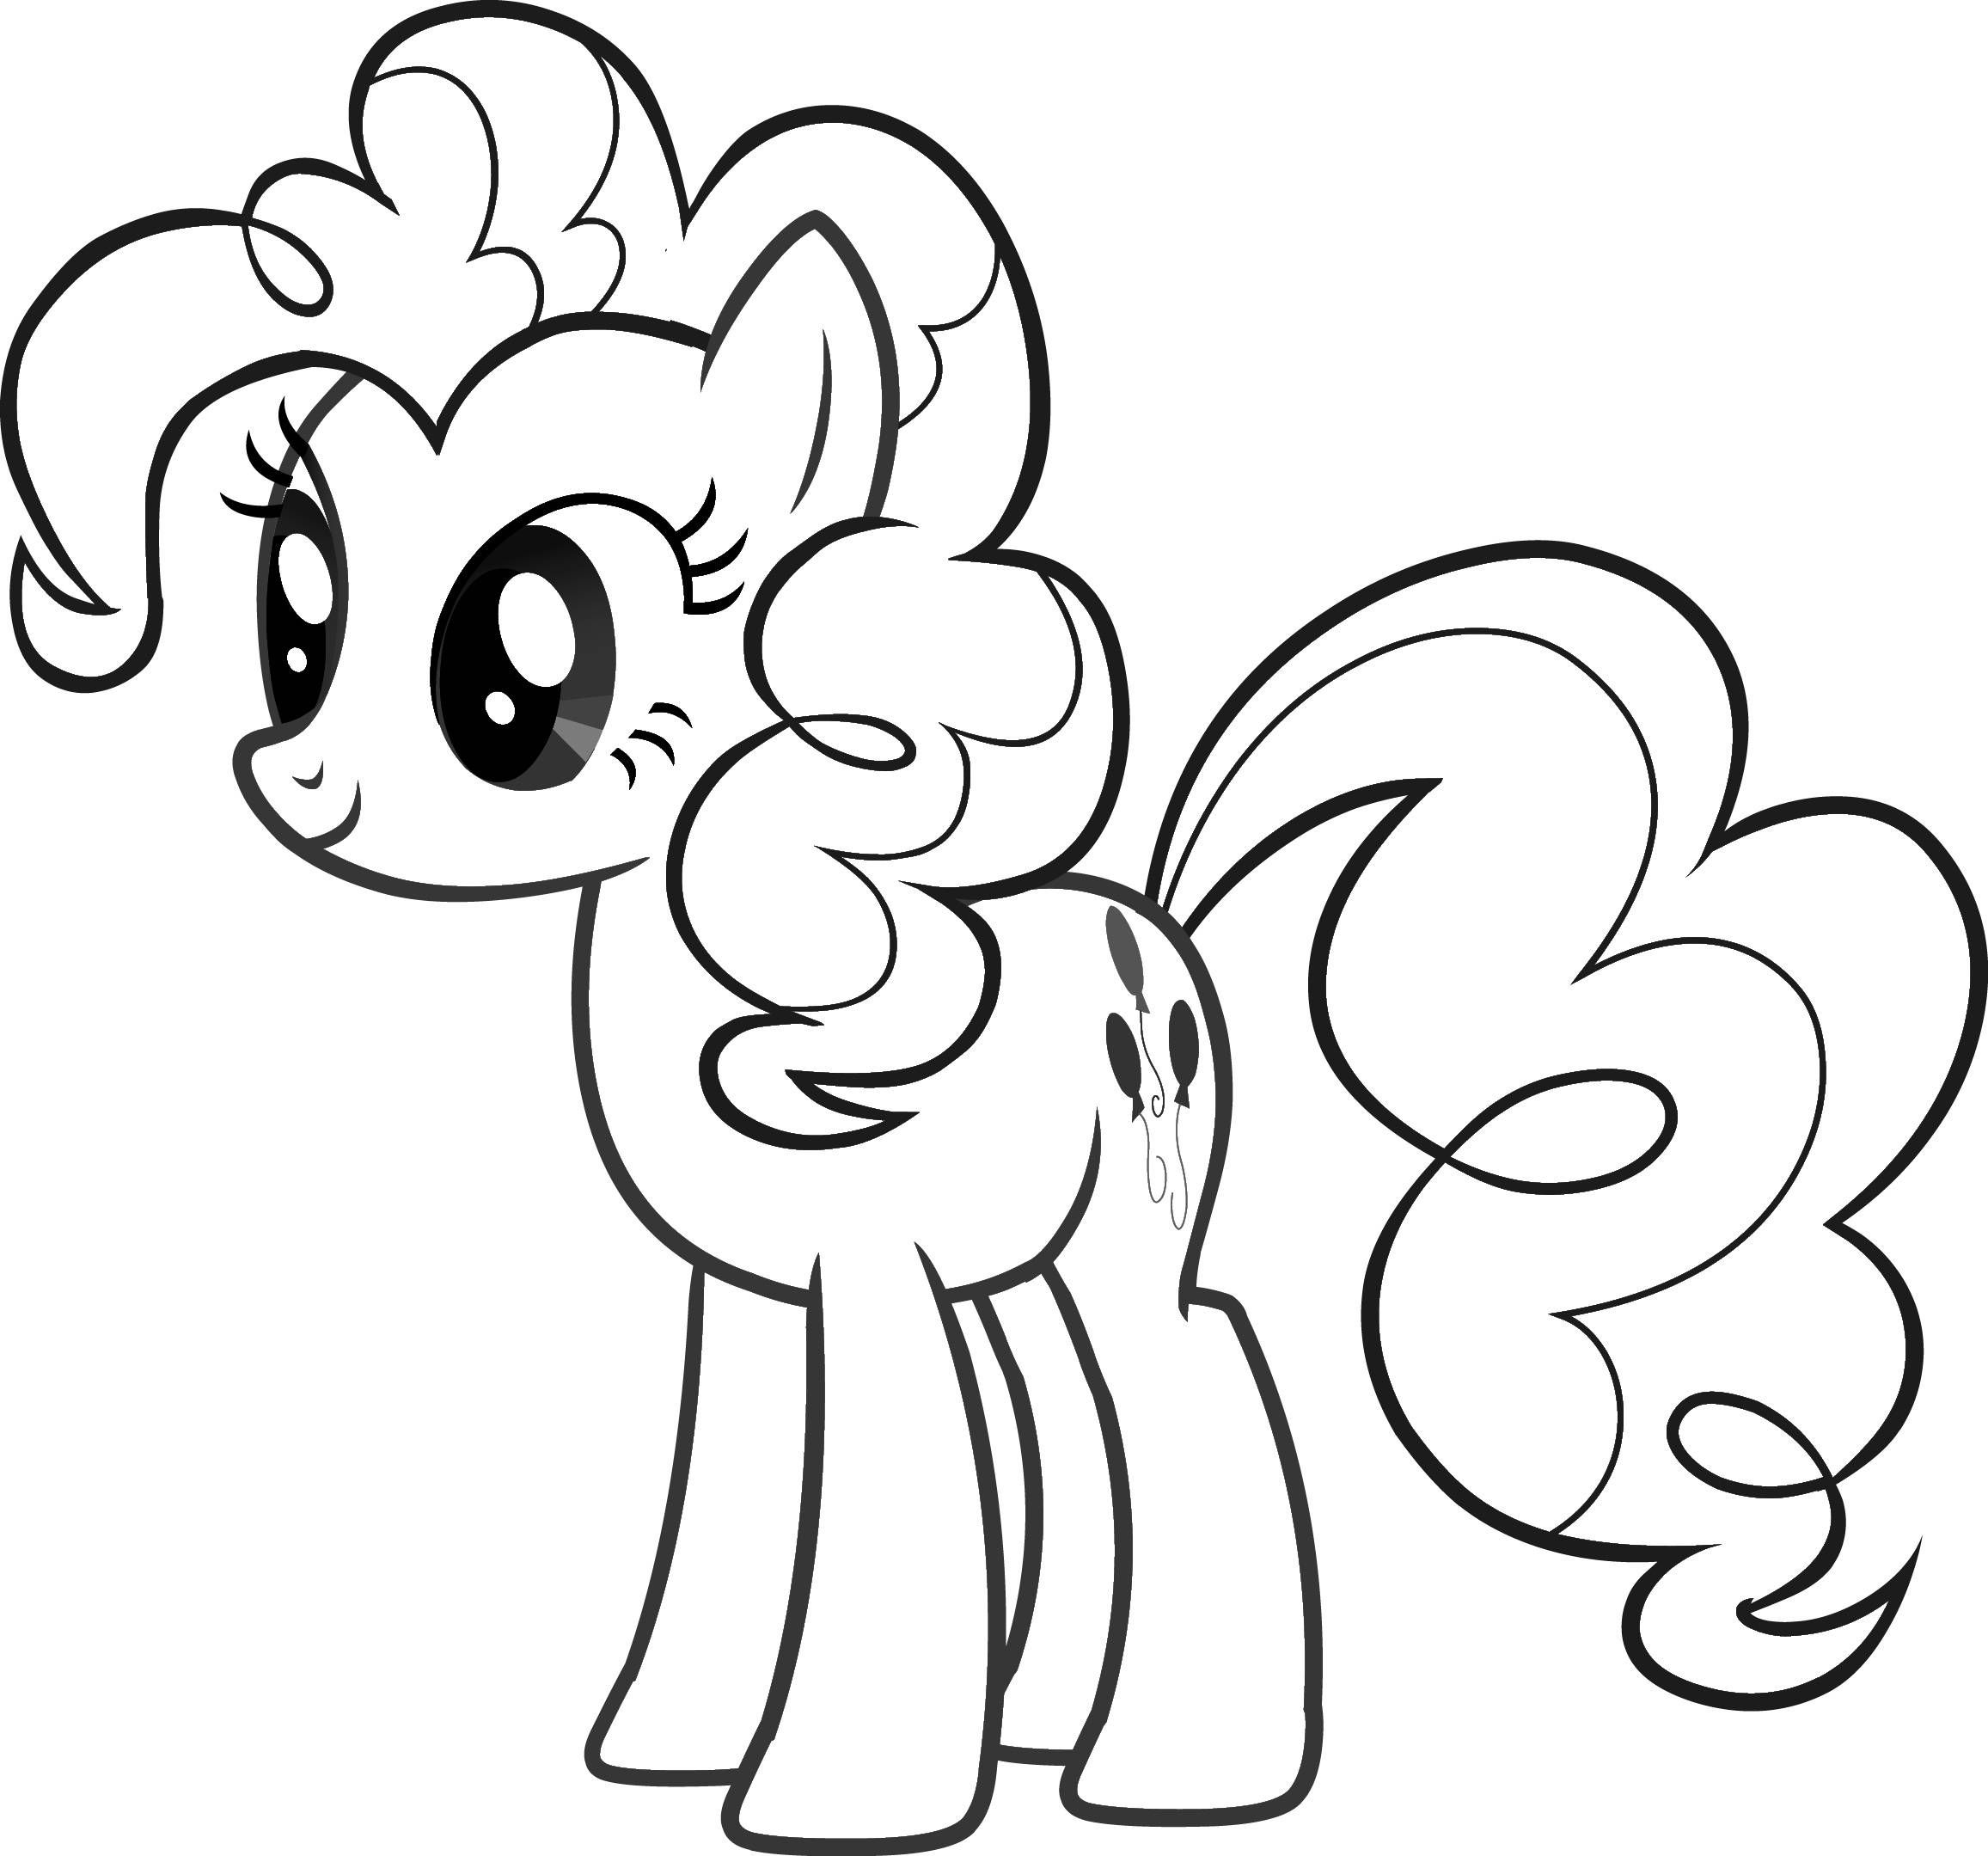 Adult Cute My Pretty Pony Coloring Pages Gallery Images top rarity my little pony and coloring pages on pinterest images